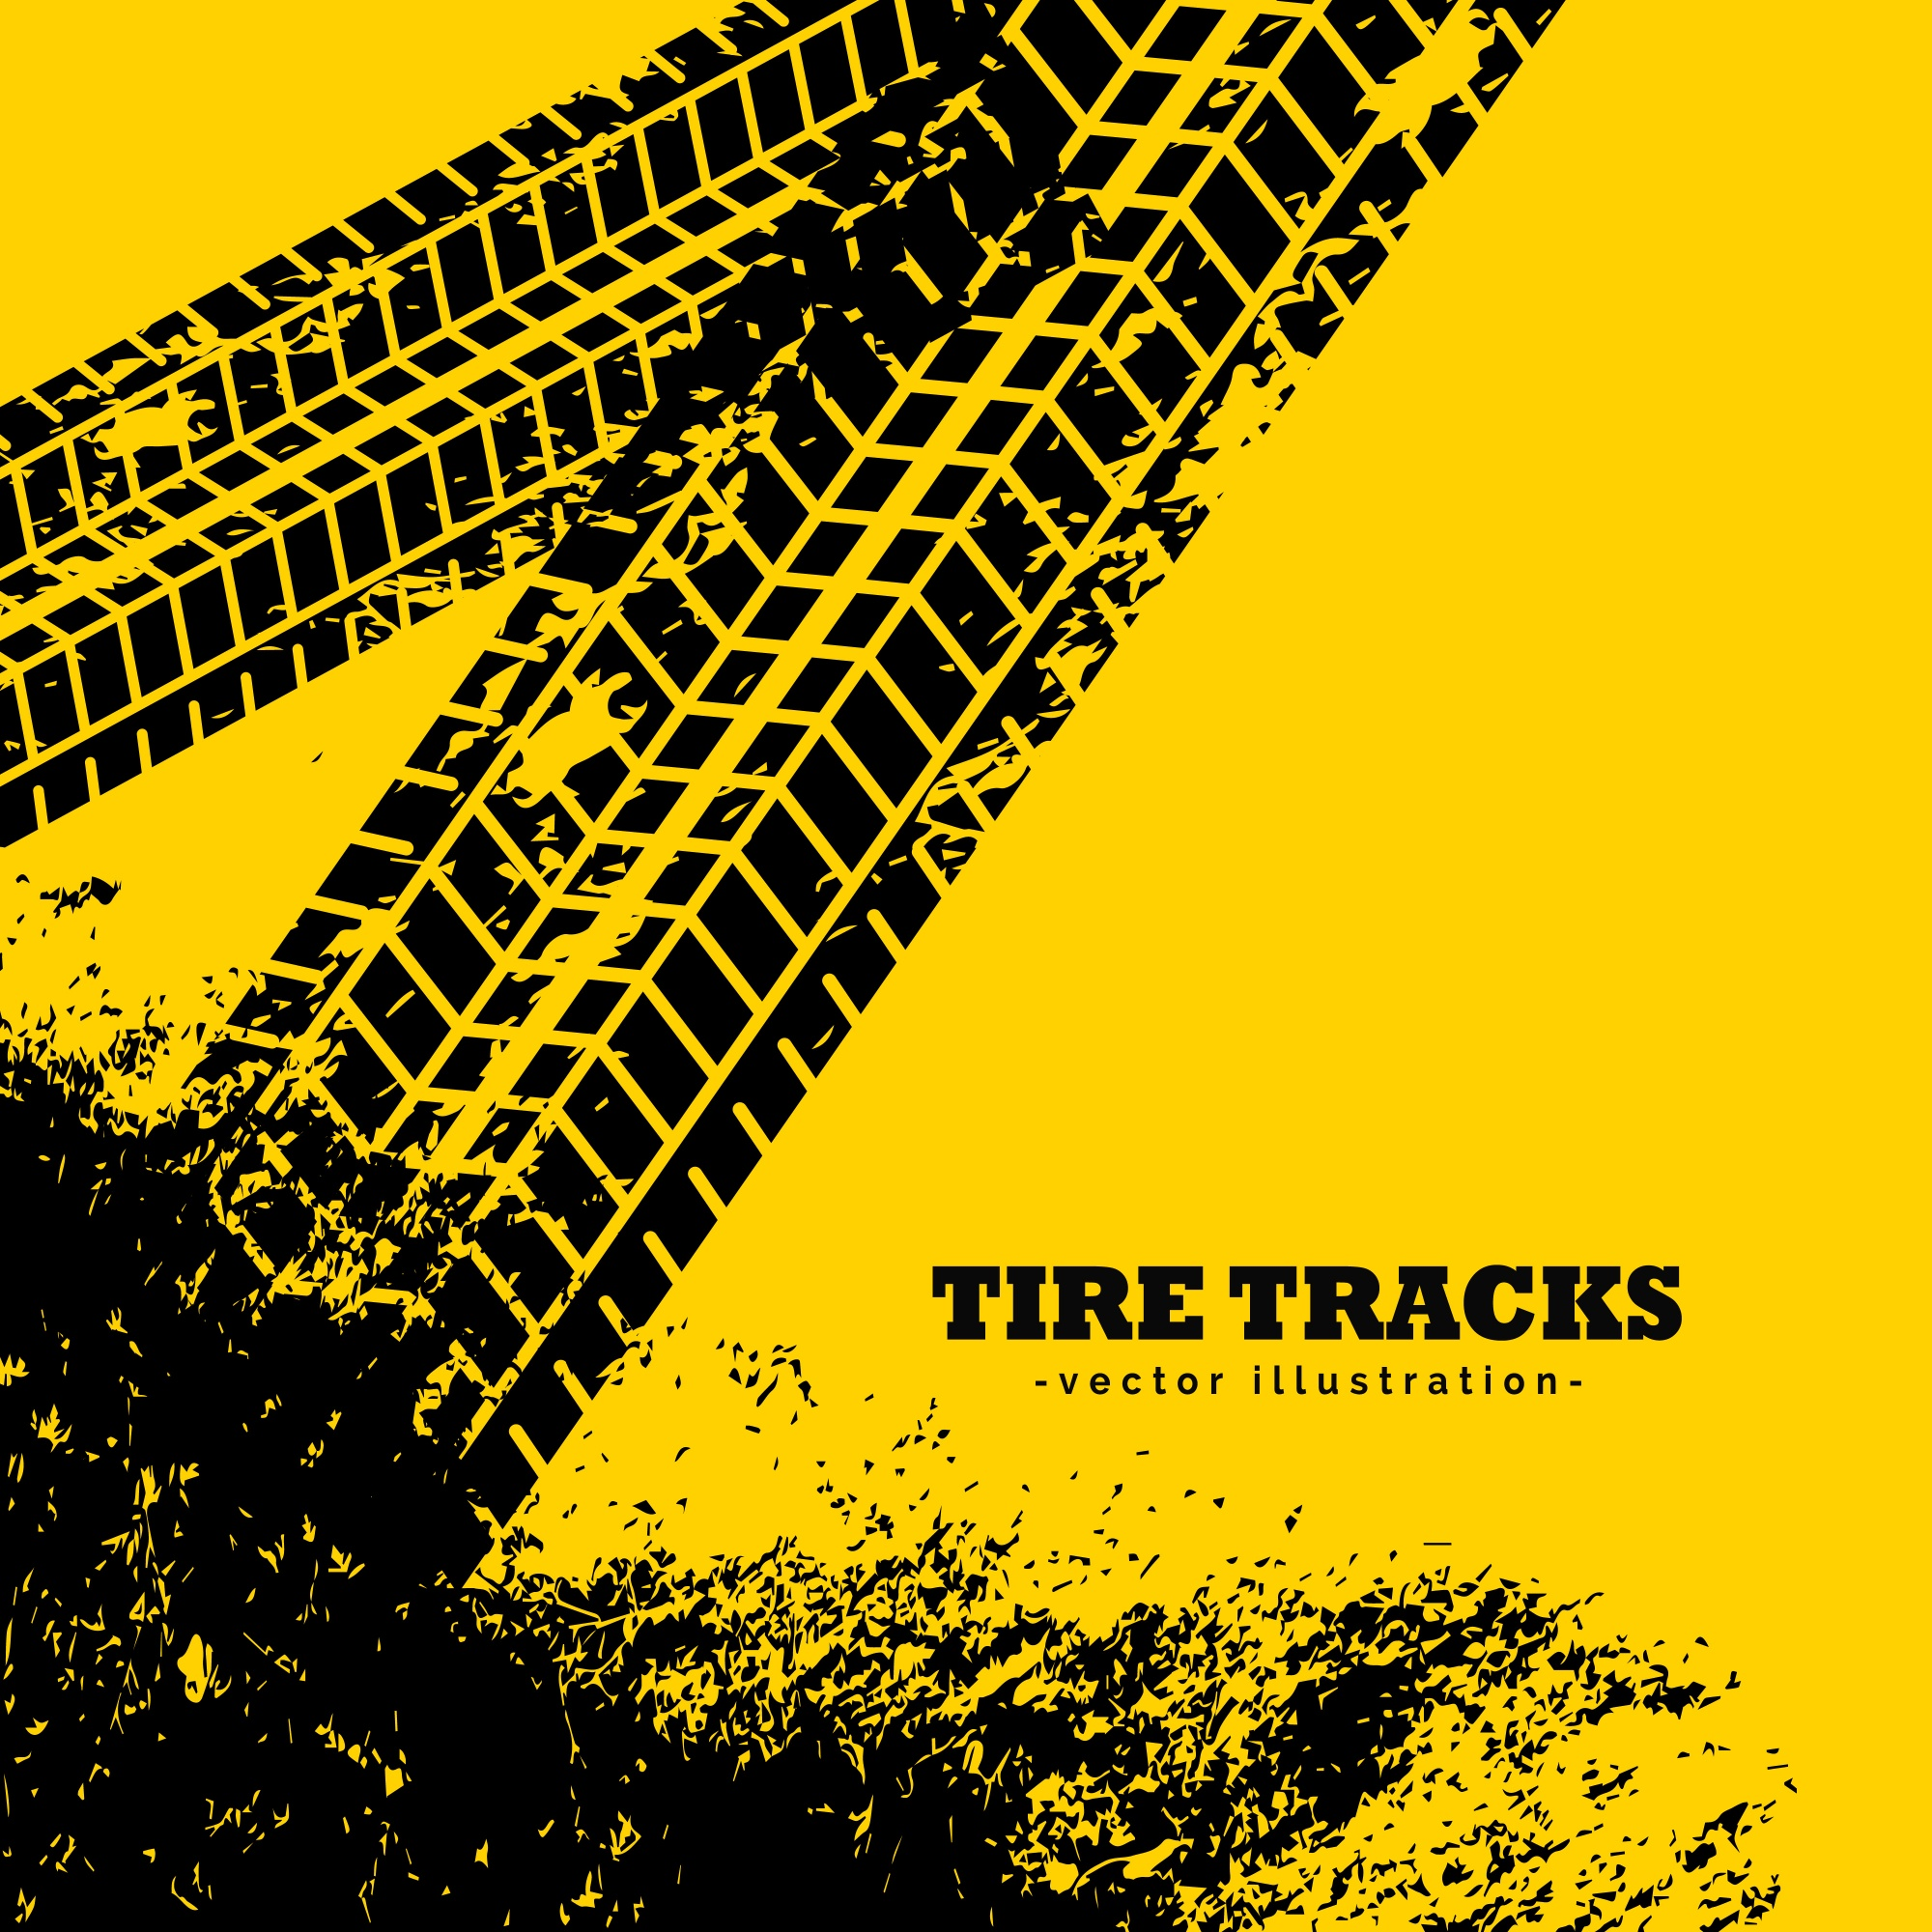 Tire tracks on grunge yellow background